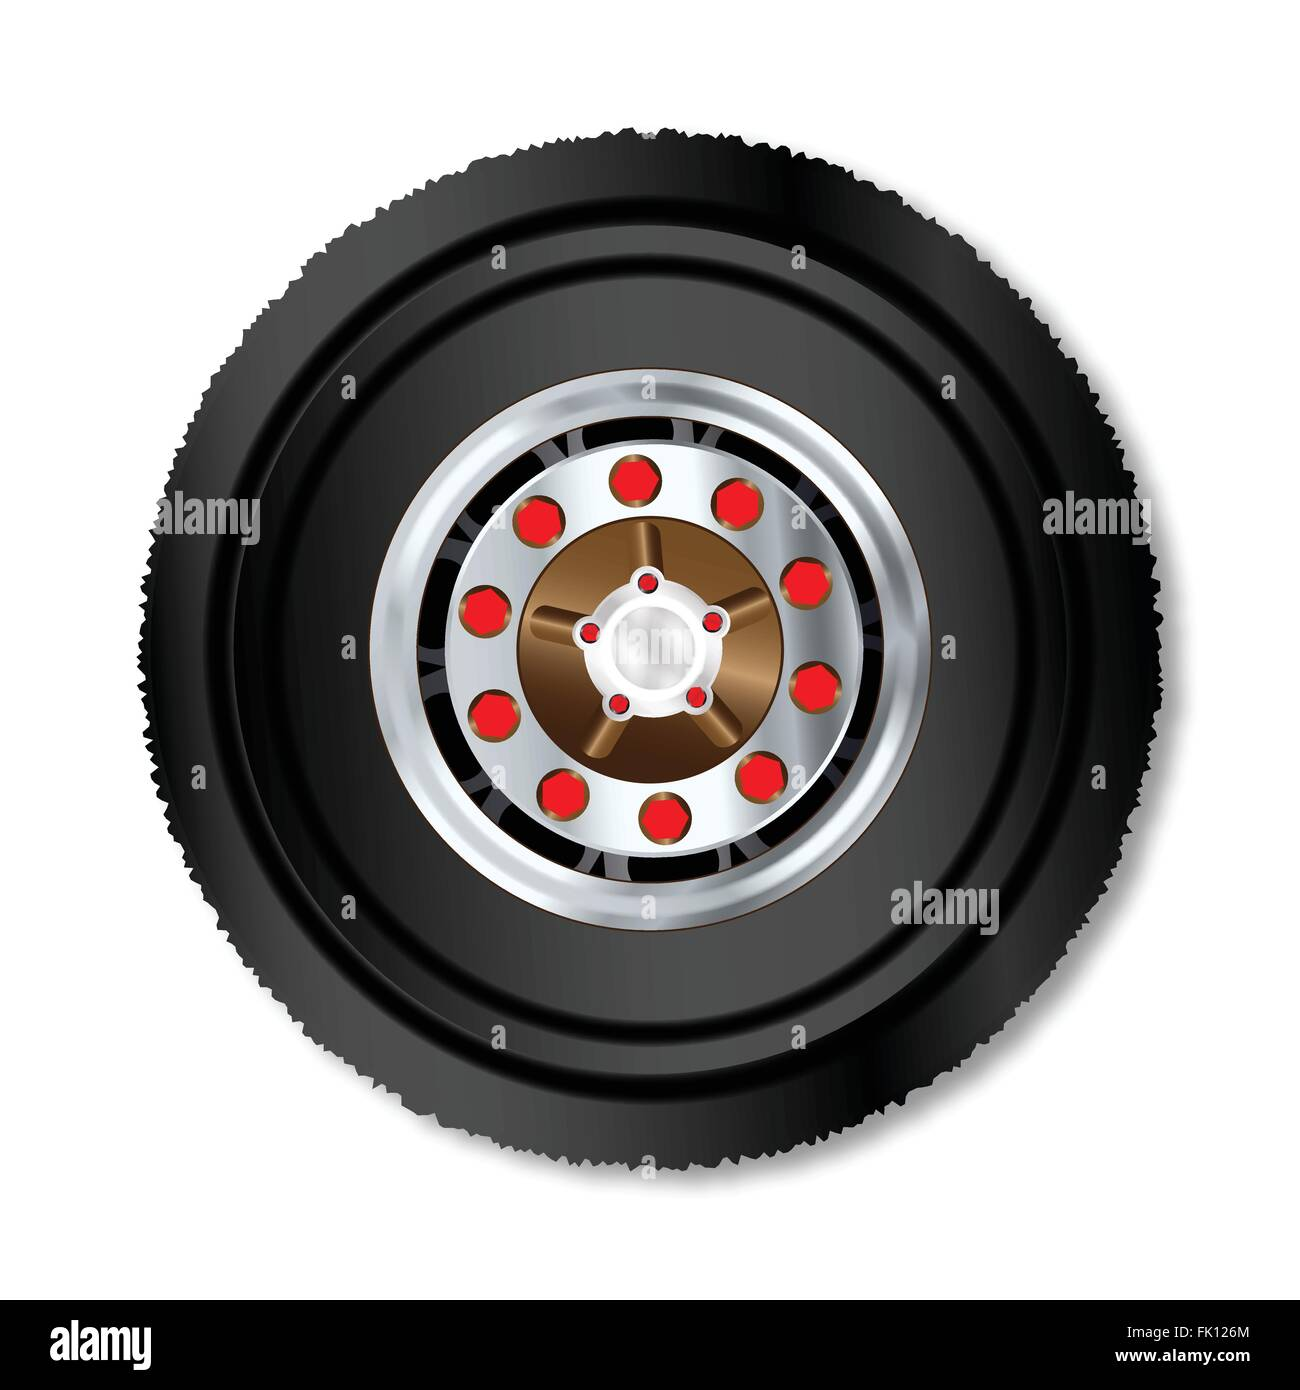 The wheel ov a large truck over a white background - Stock Vector